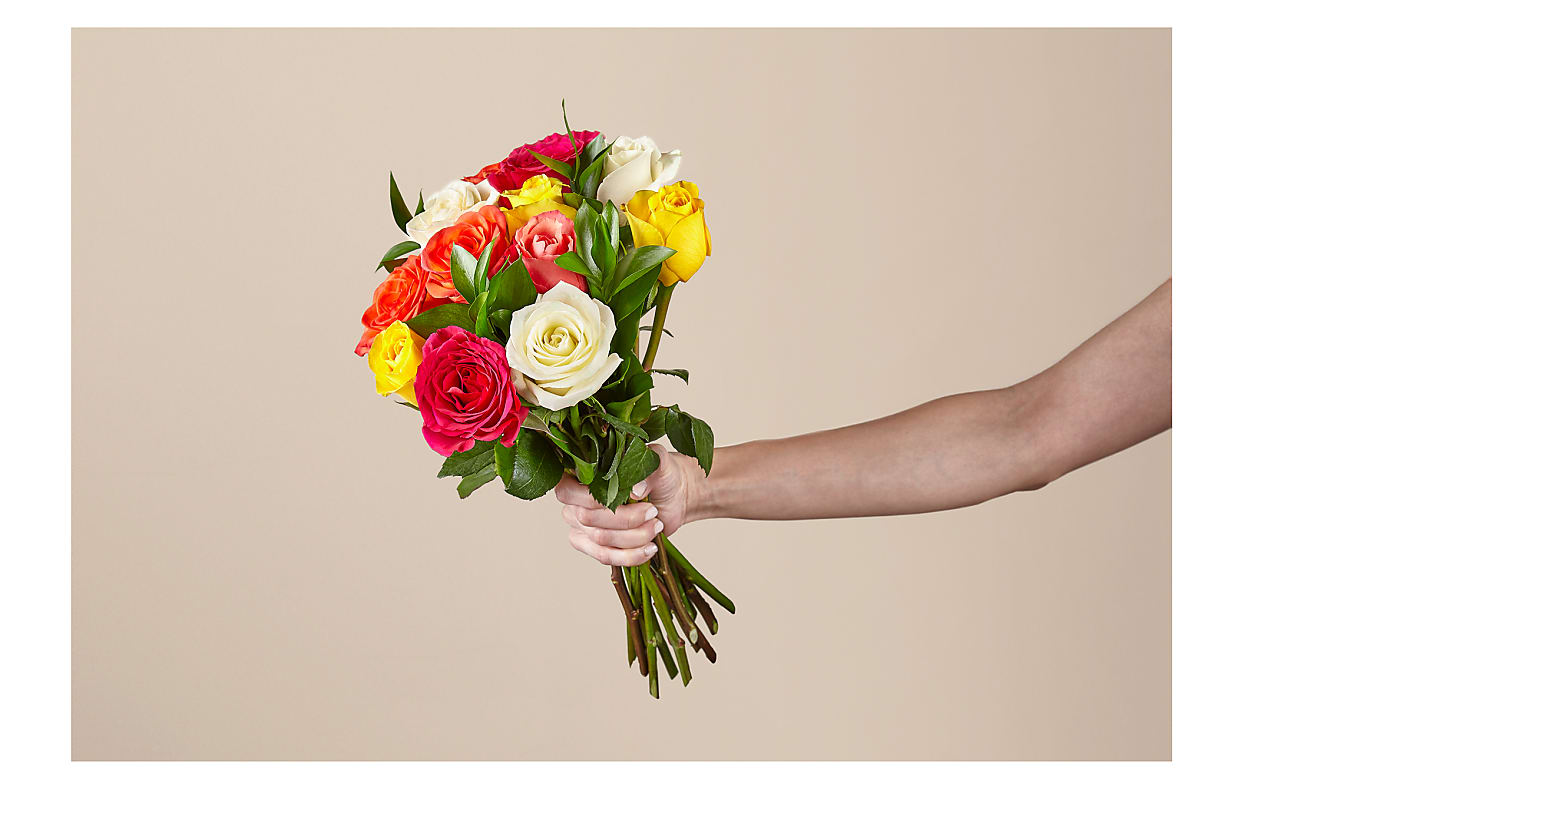 Mixed Roses with Vase - Image 2 Of 4